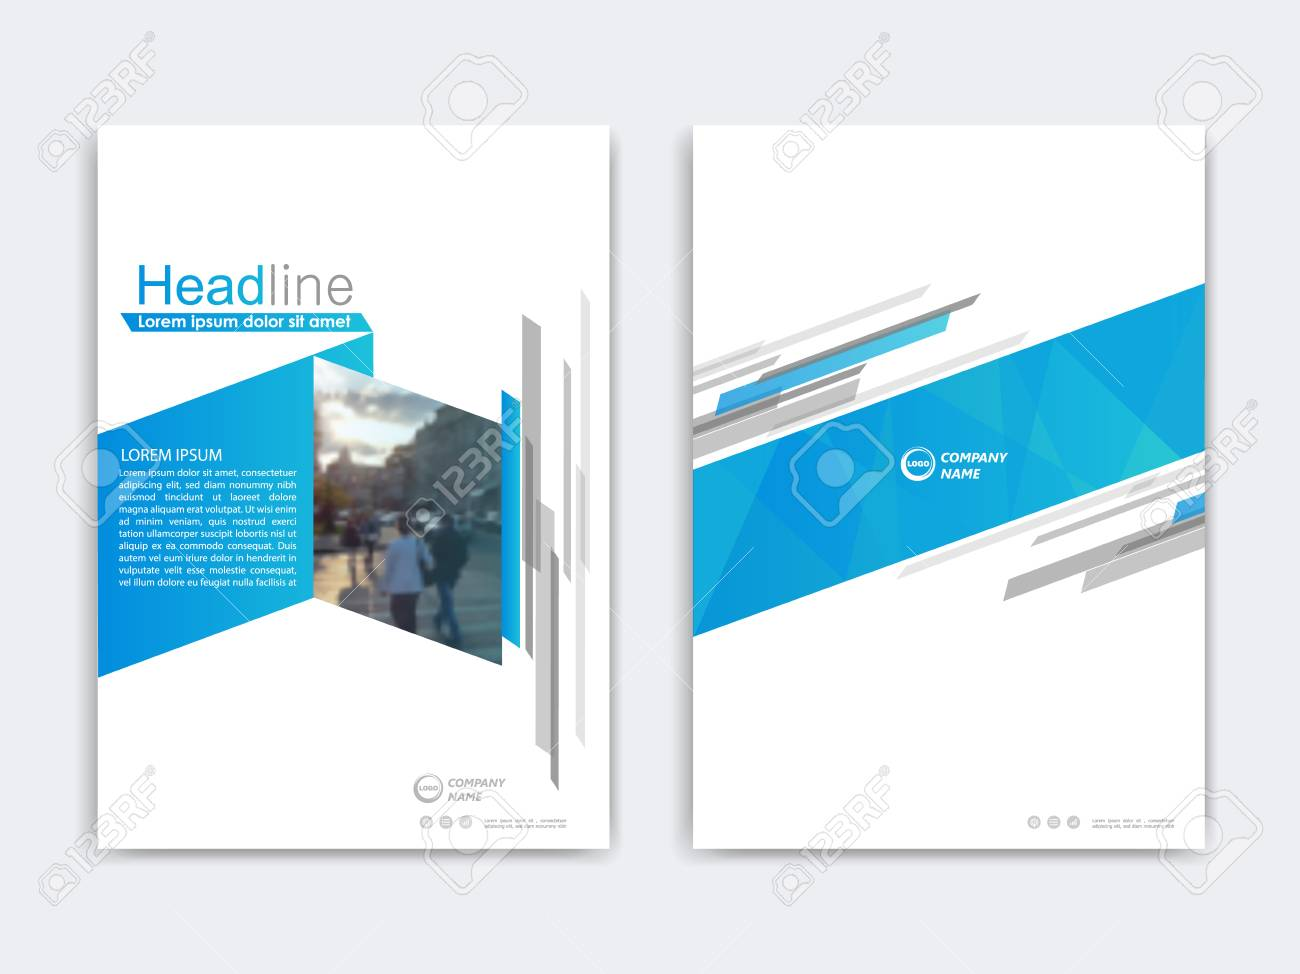 Annual Report Presentation Brochure Front Page Report Book Royalty Free Cliparts Vectors And Stock Illustration Image 68605258